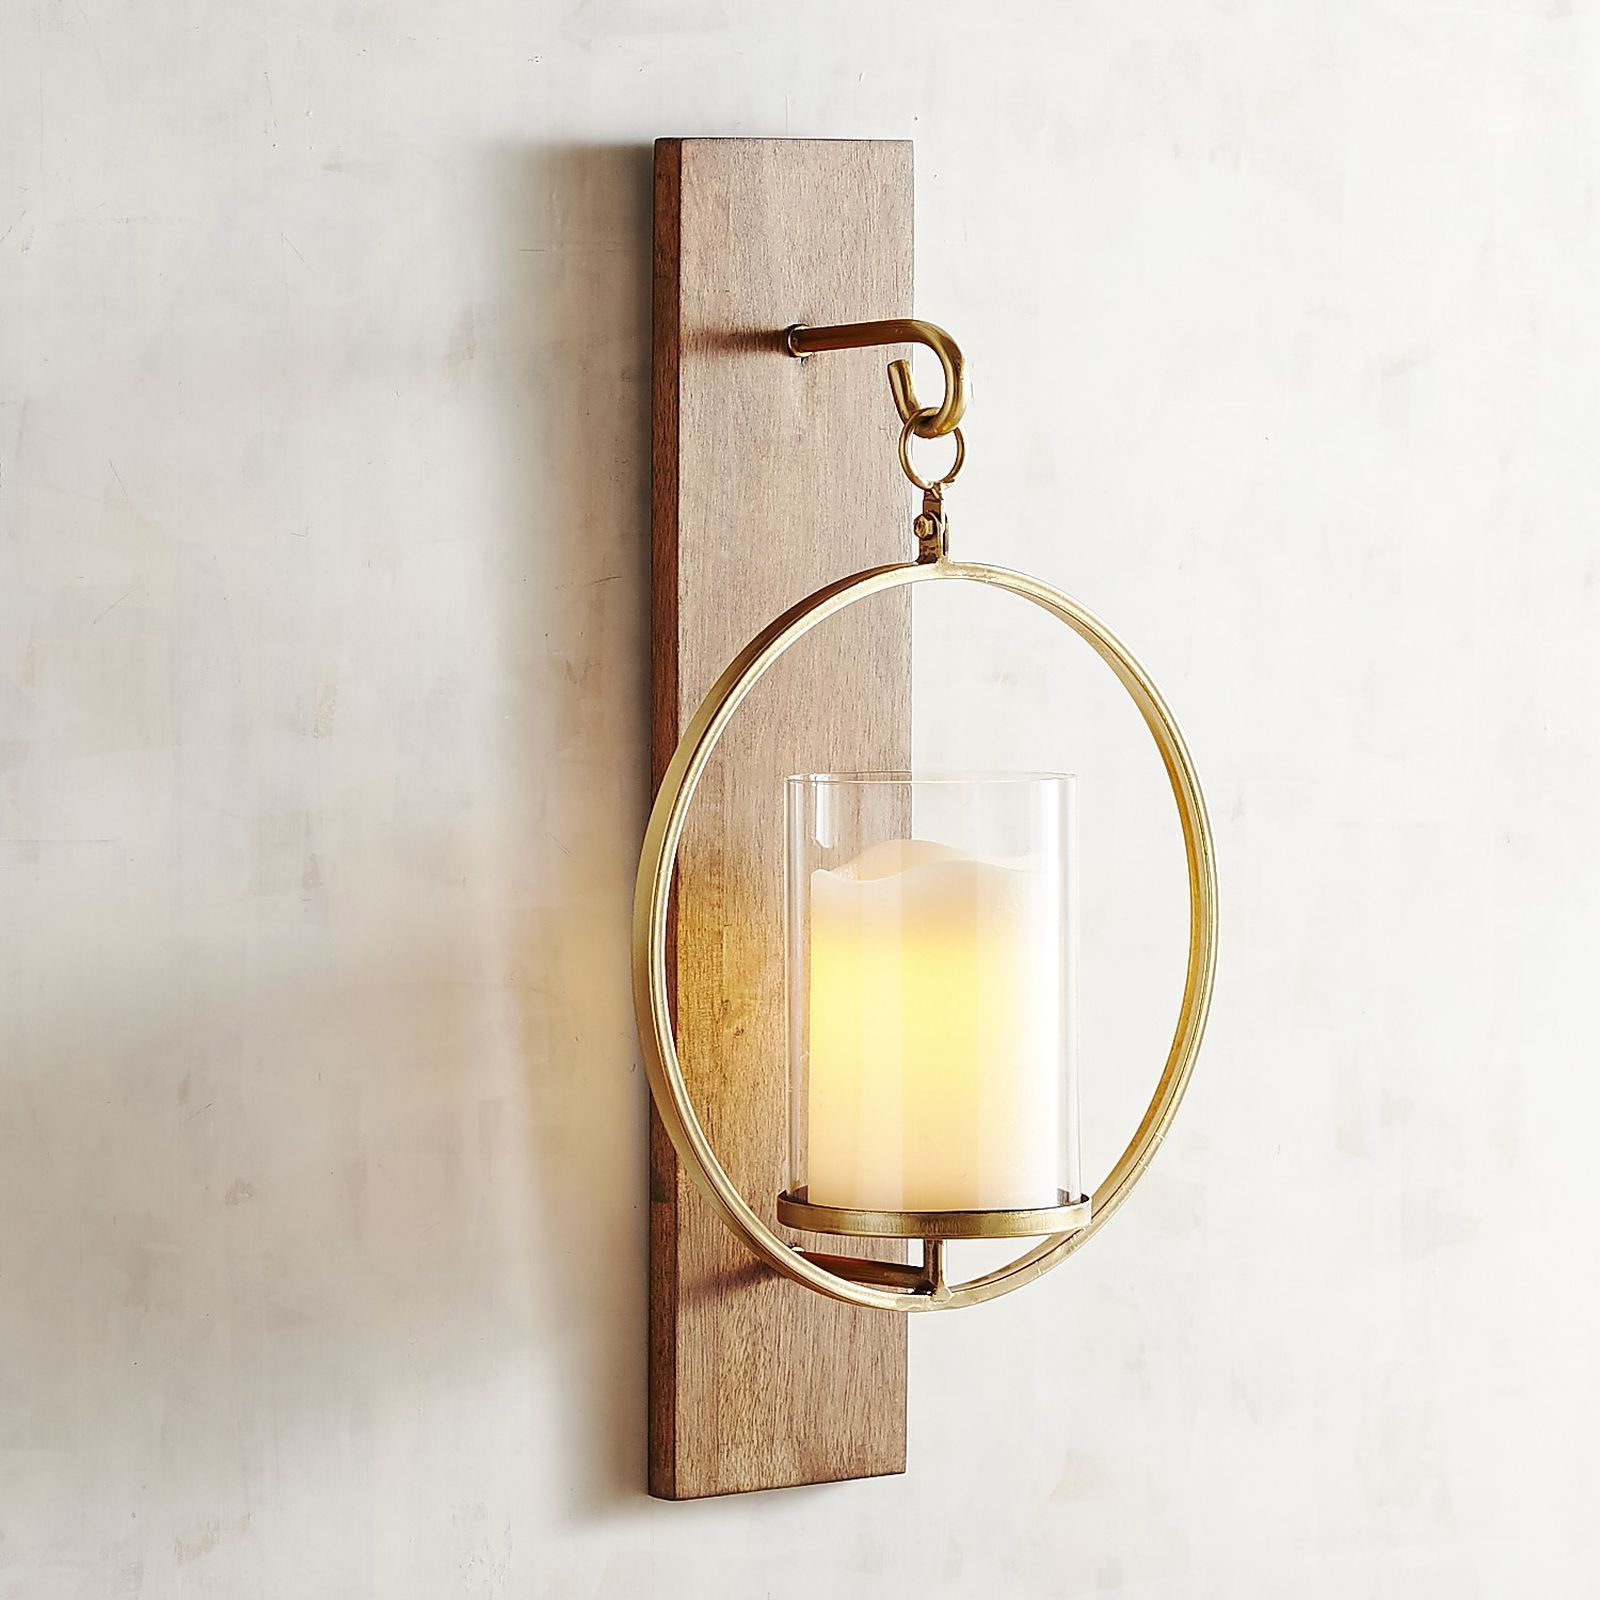 11 best wall mounted candle sconces for 2018 decorative candle sconces and holders nauticalwallsconce masonjarwallsconce